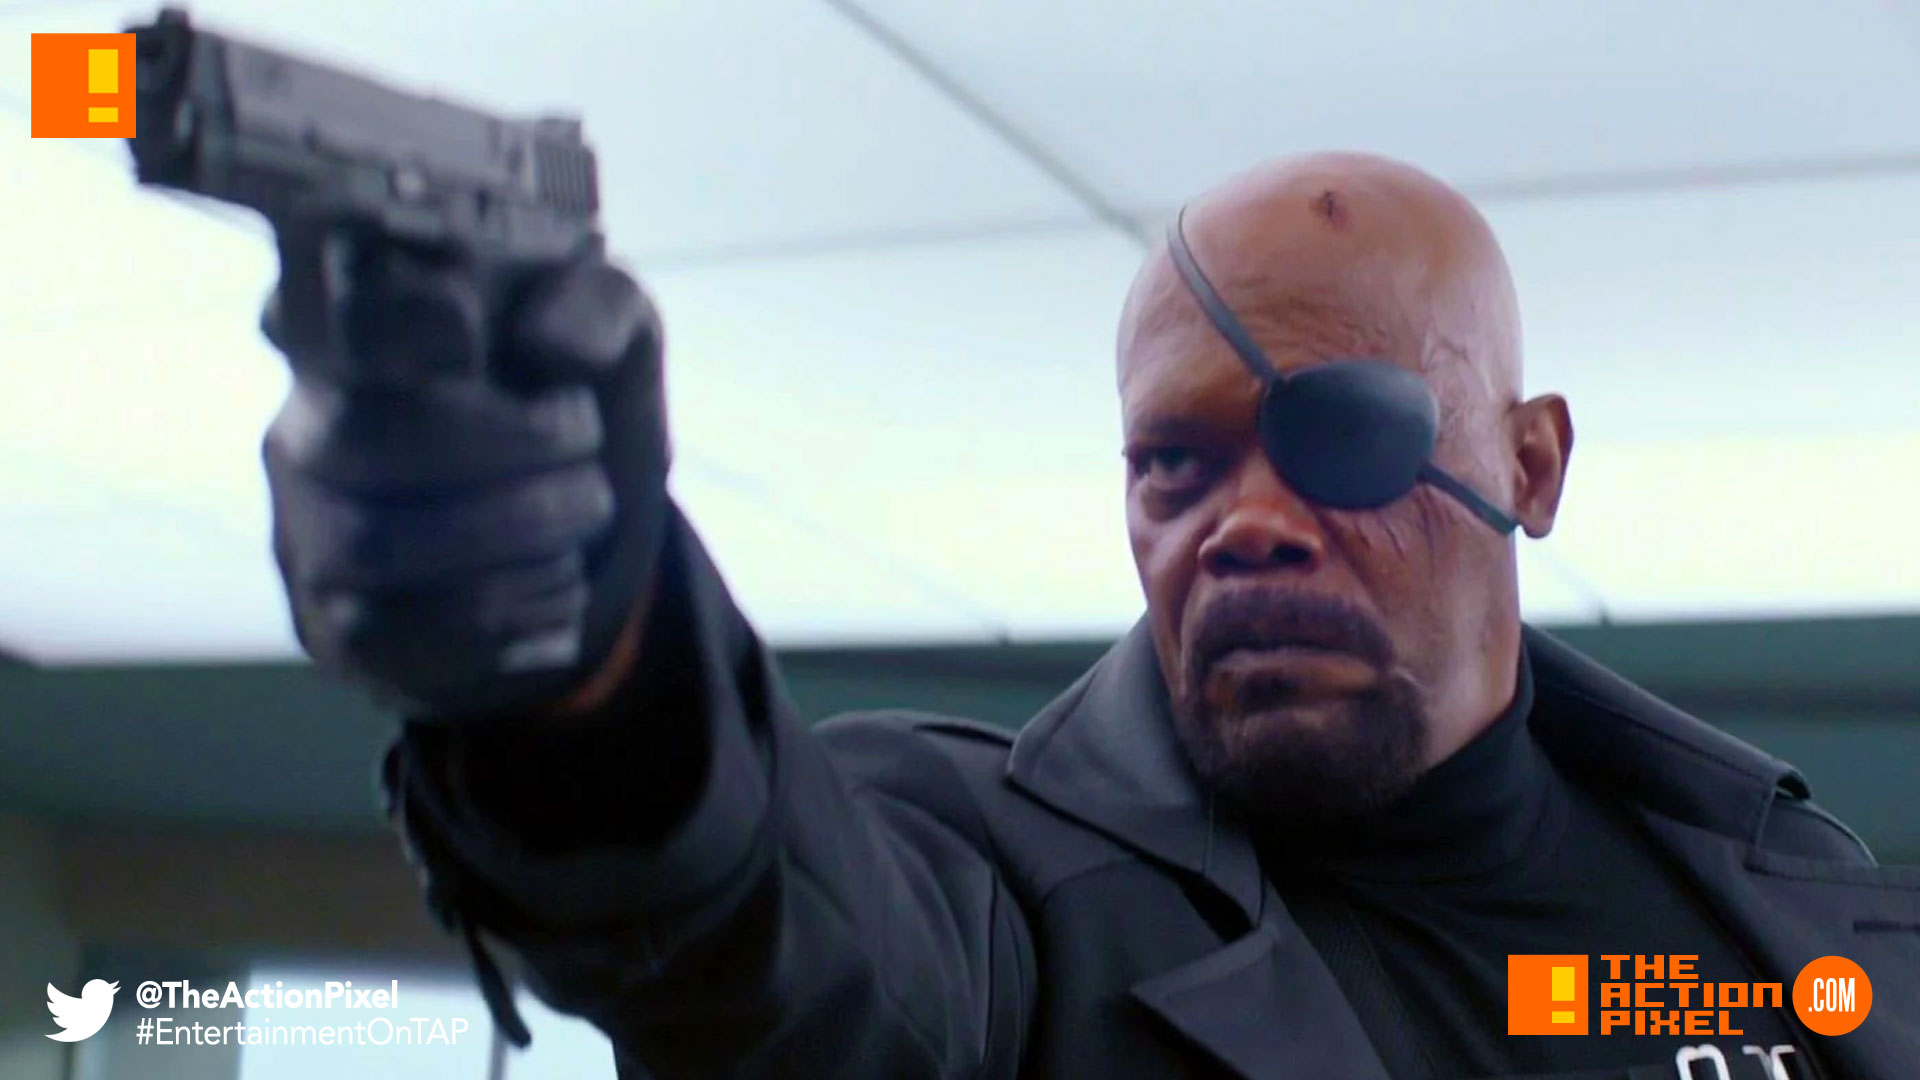 nick fury, marvel, the action pixel, entertainment on tap, marvel studios, brie larson, carol danvers, nick fury, the action pixel, entertainment on tap, marvel studios, marvel comics, marvel,